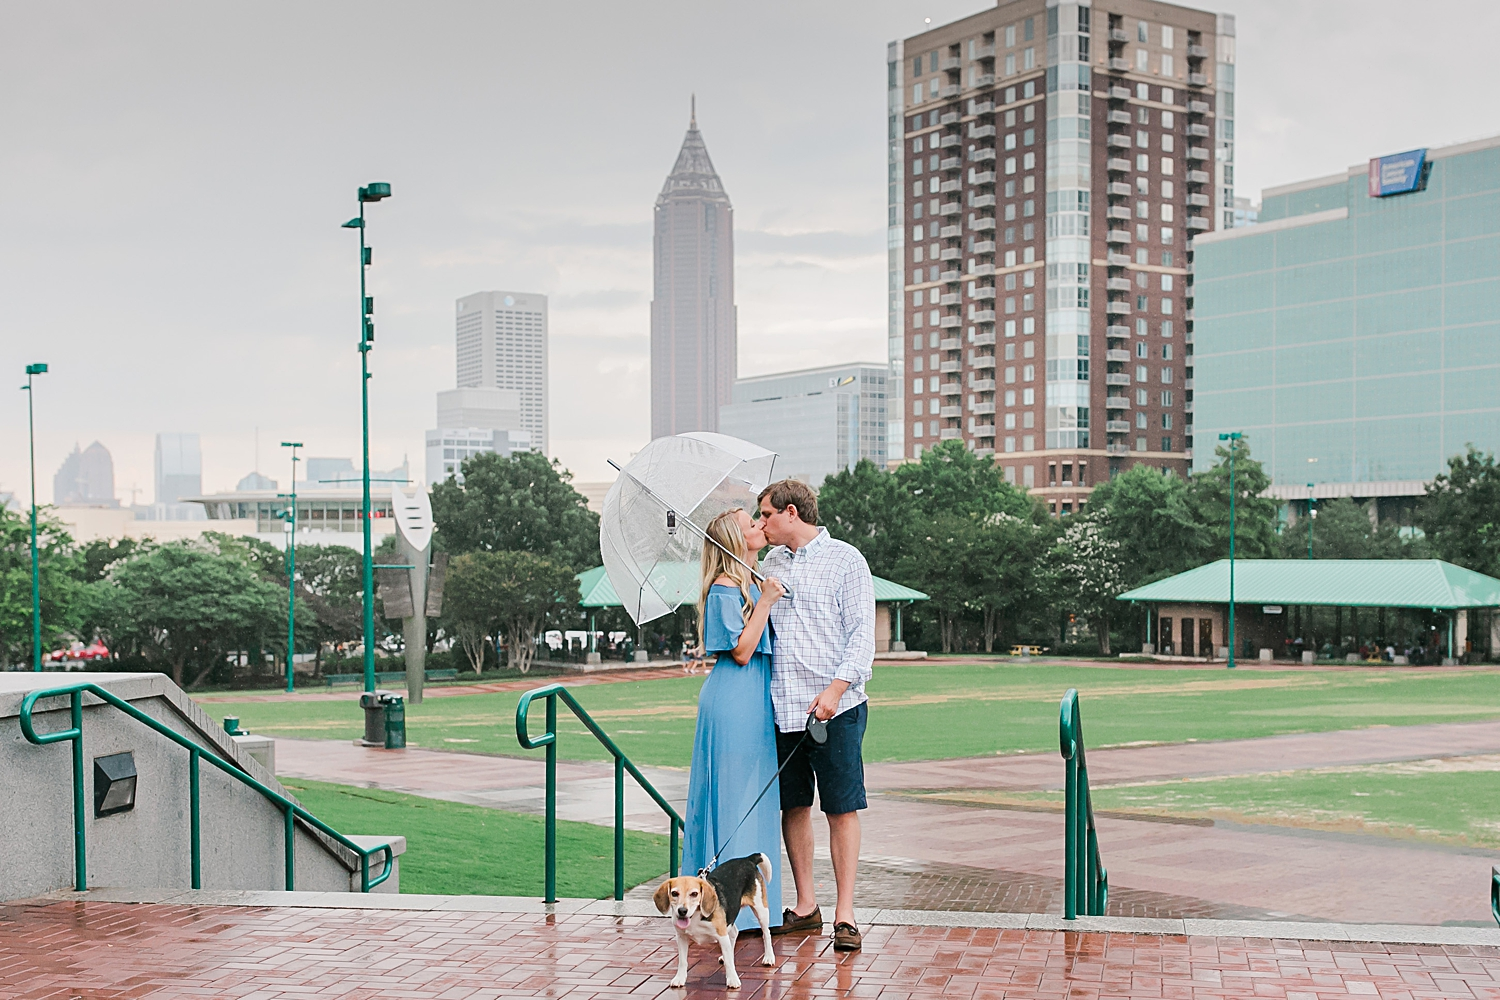 centennial-olympic-park-engagement-session-jb-marie-photography